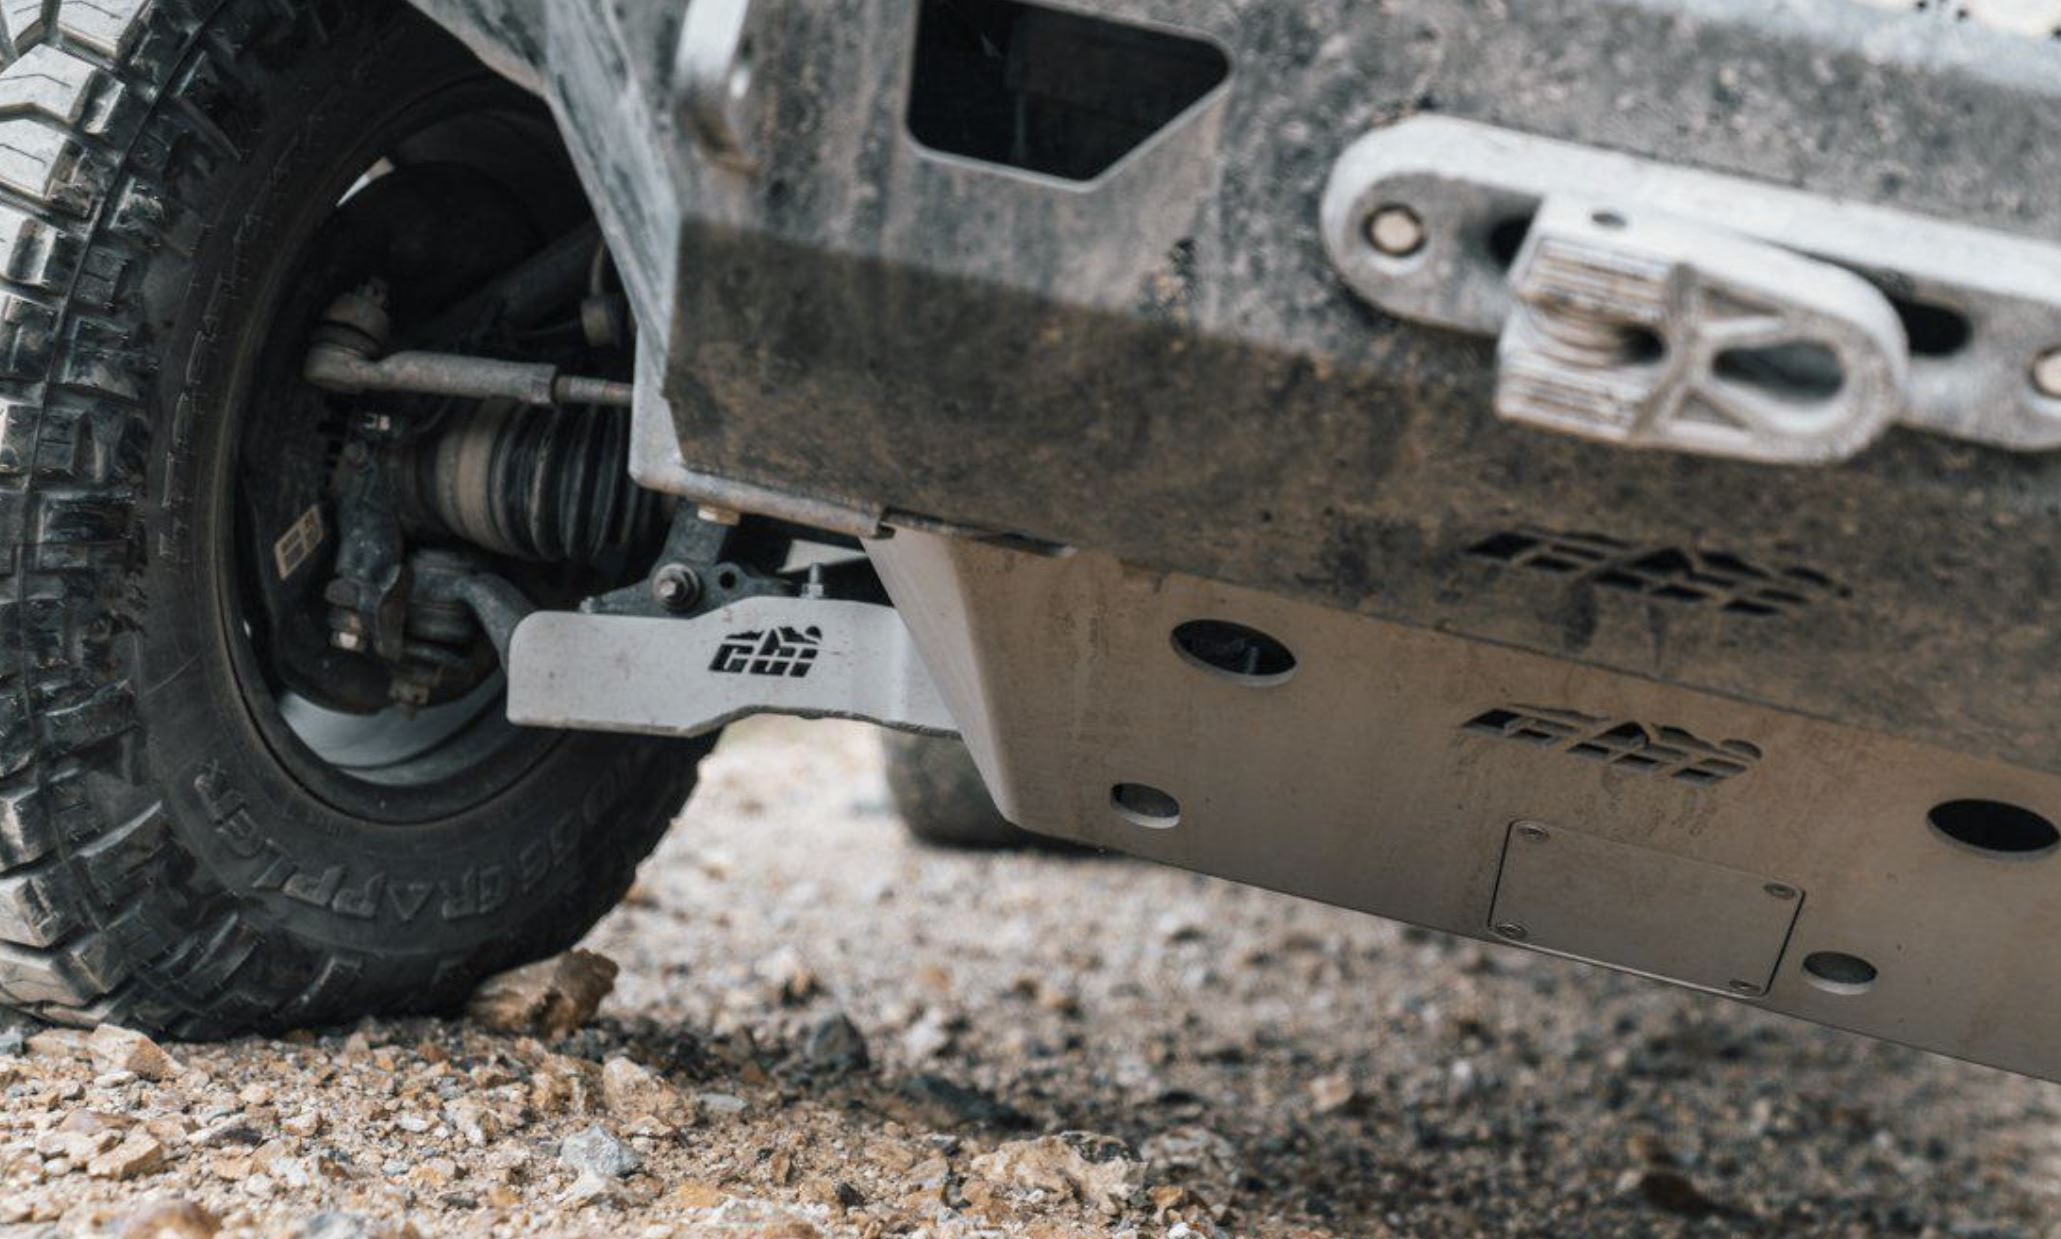 CBI Off-Road Fabrication Lower Control Arm (LCA) Skid Plate for 3rd Gen Tacoma